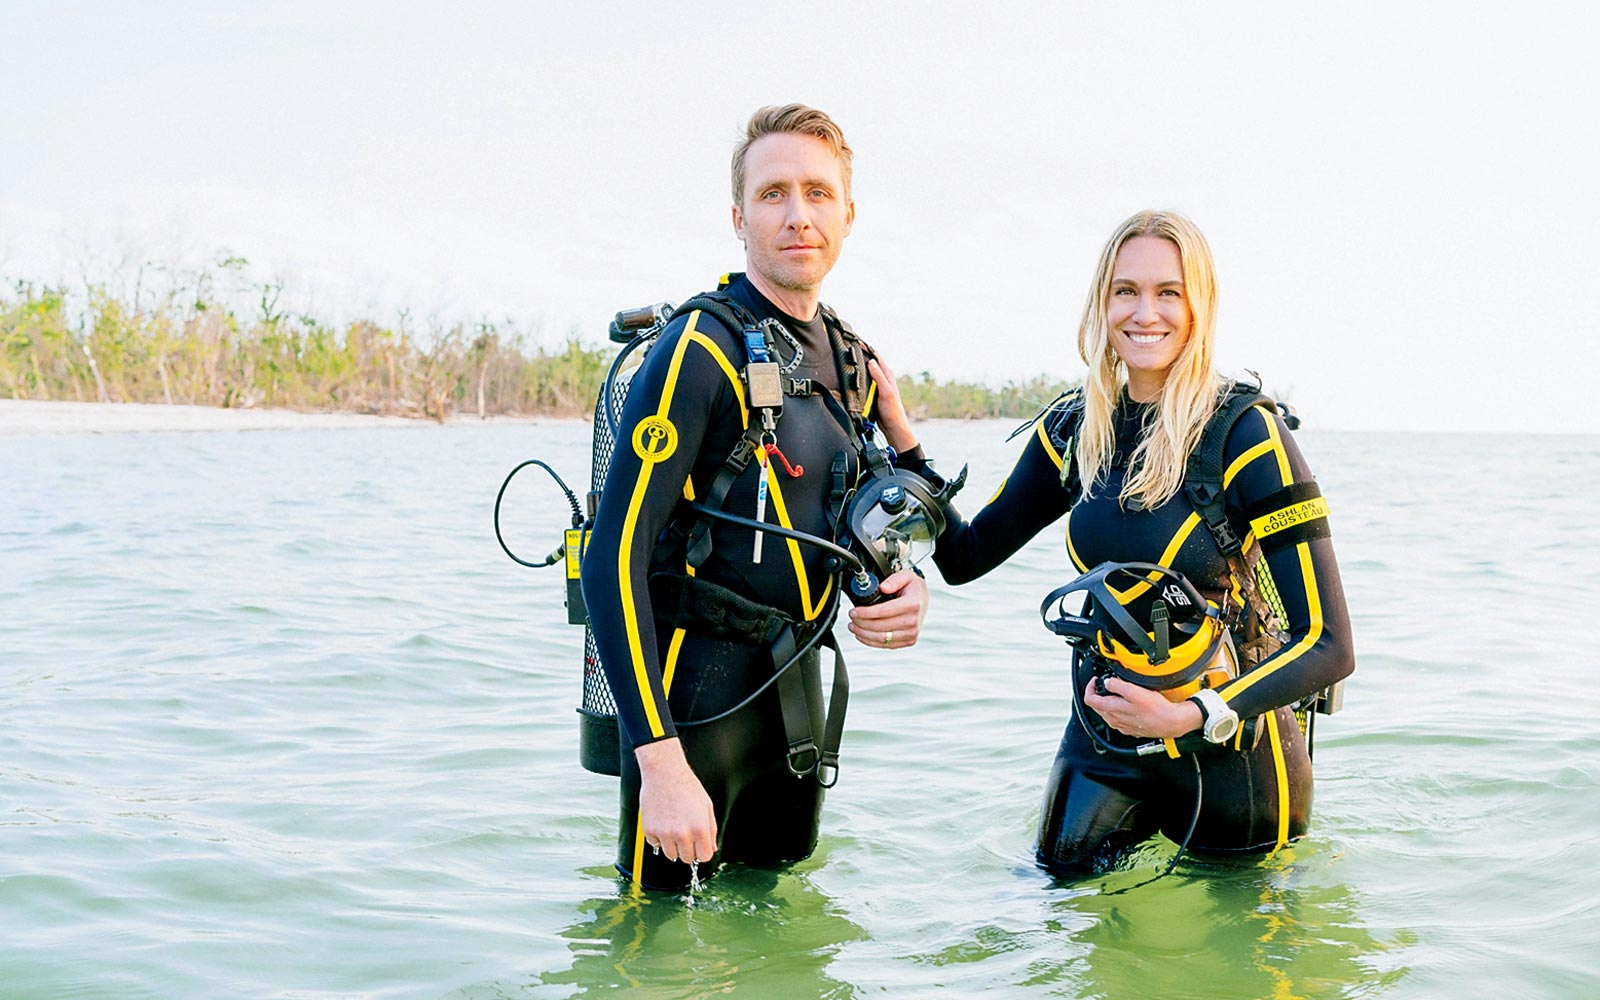 Philippe and Ashlan Cousteau in Marco Island filming Caribbean Pirate Treasure